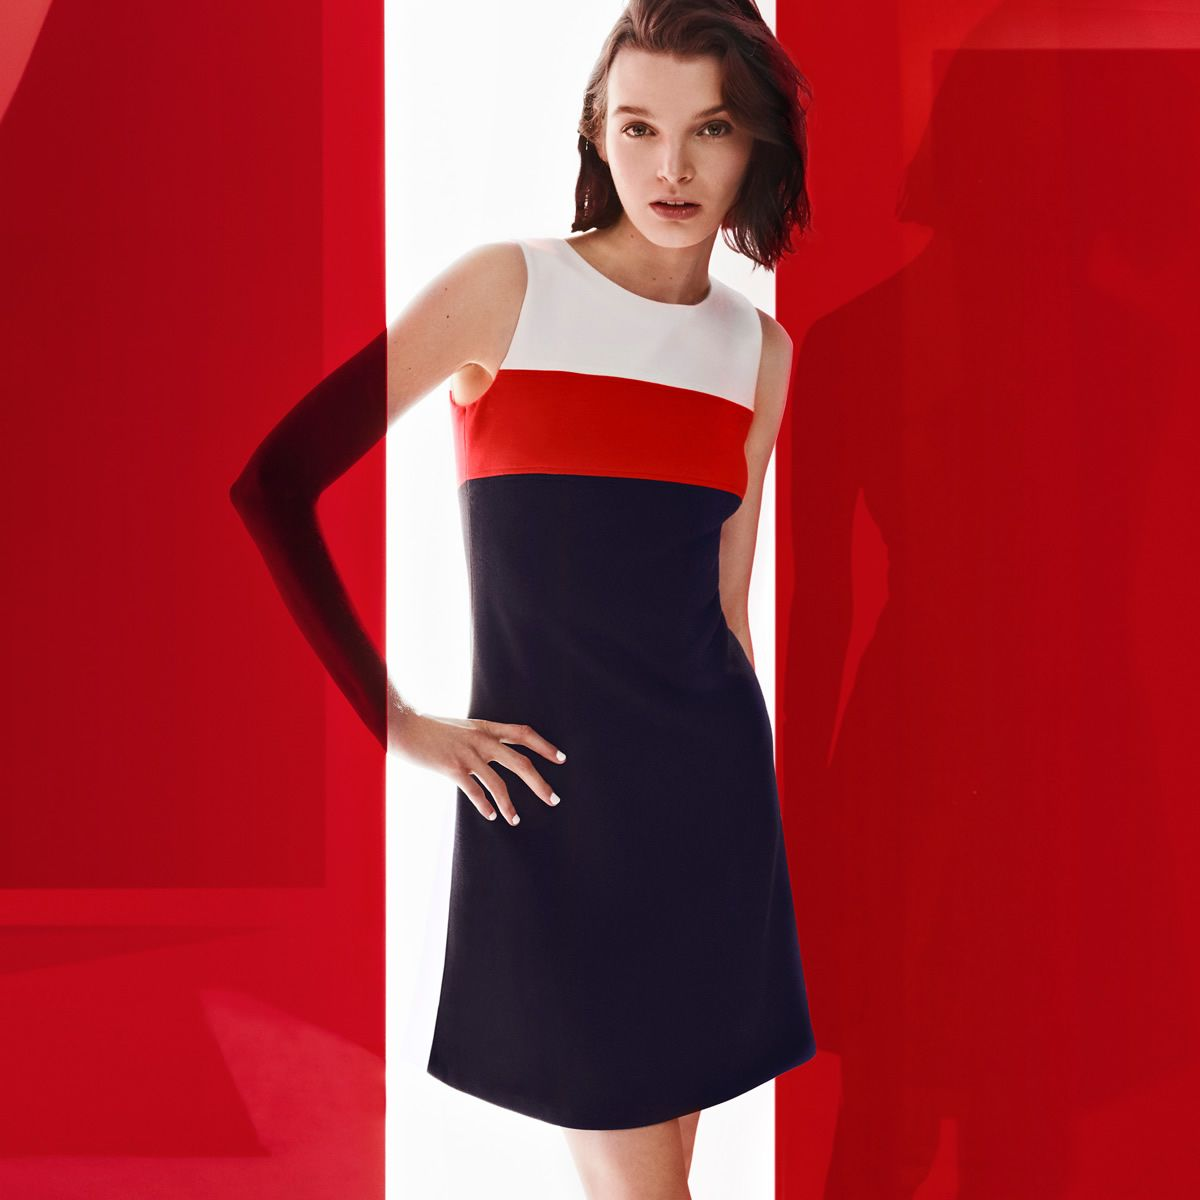 58e5d85966a5 Tommy Hilfiger Dresses for Women - Macy's